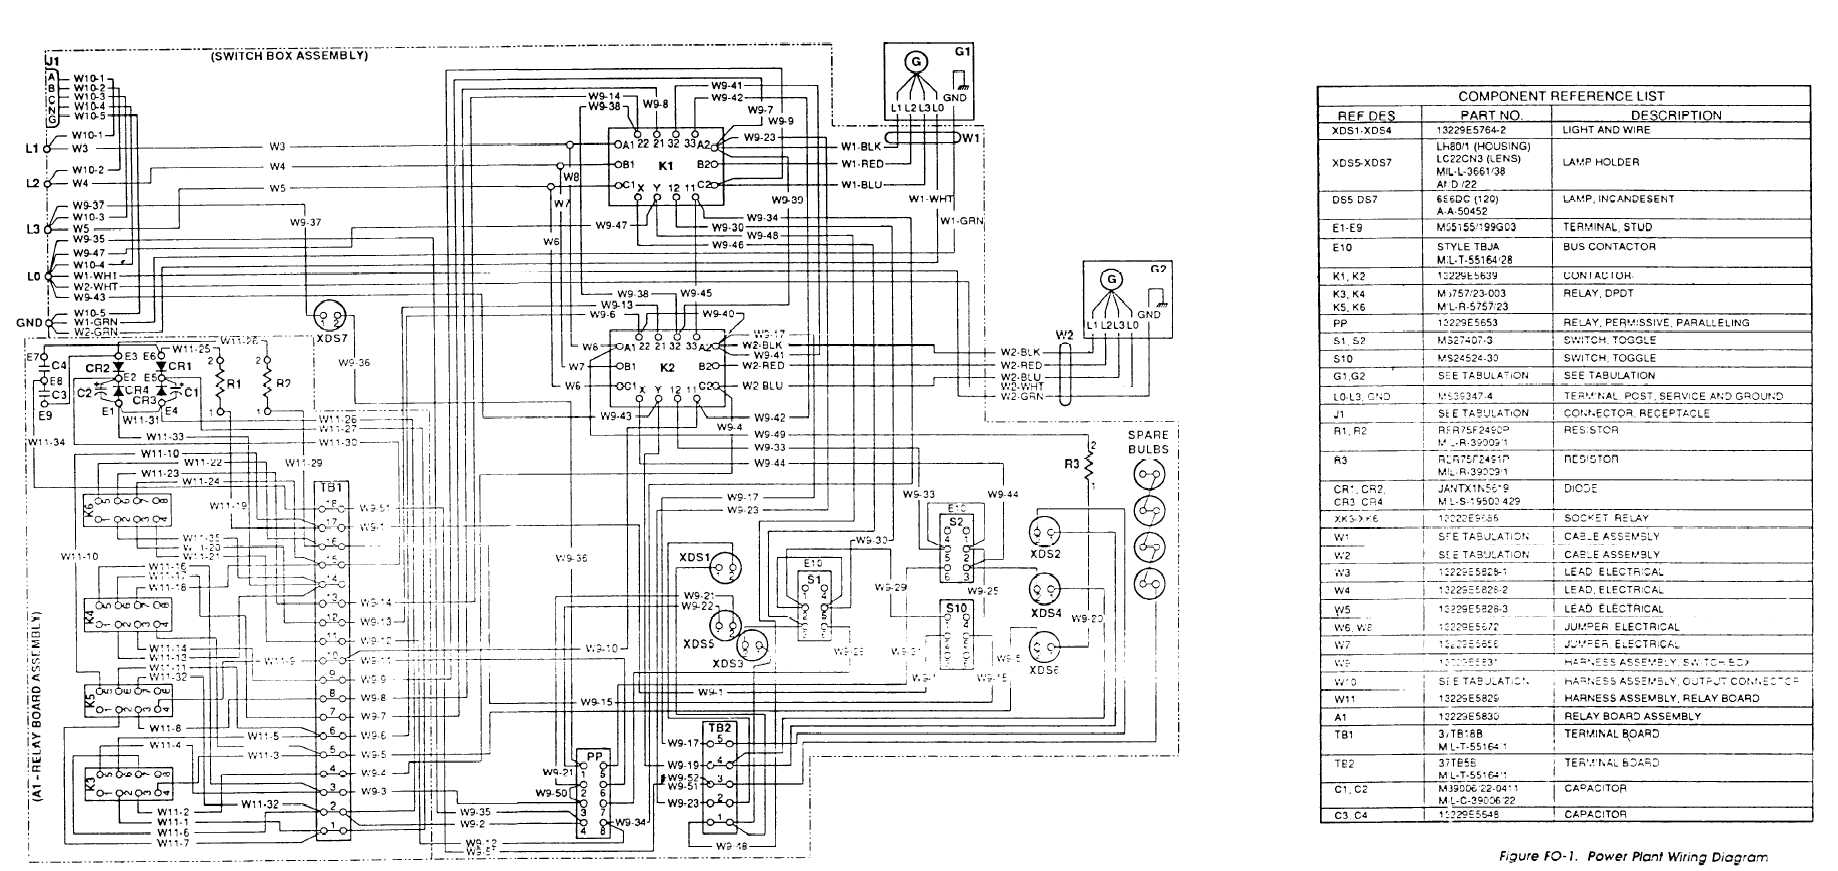 hight resolution of power plant electrical diagram completed wiring diagrams electrical generator diagram power plant electrical diagram